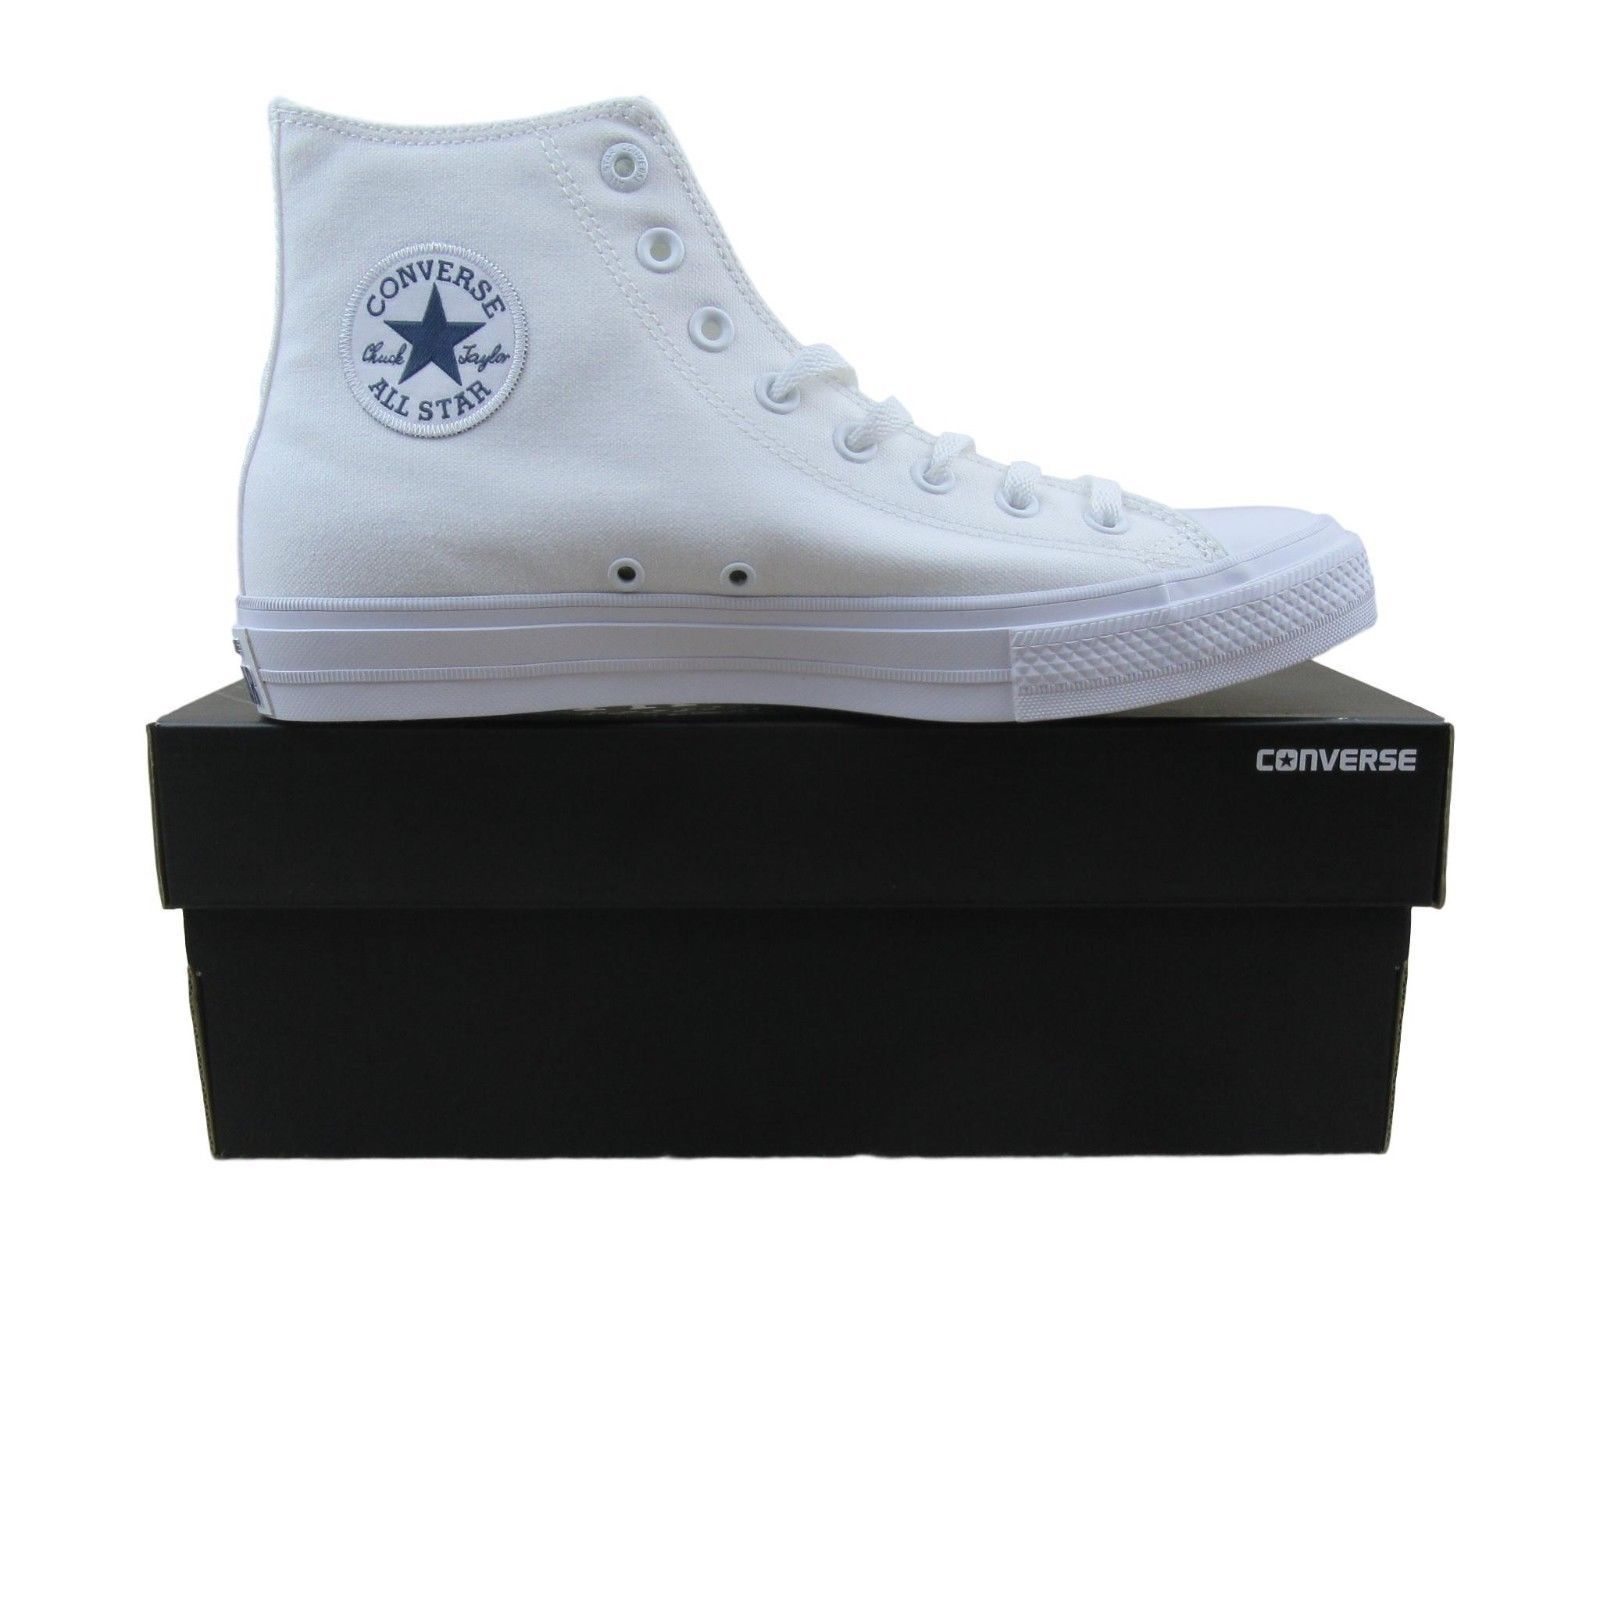 314835097dea Converse Chuck Taylor All Star II Hi Shoes Lunarlon White 150148C ...